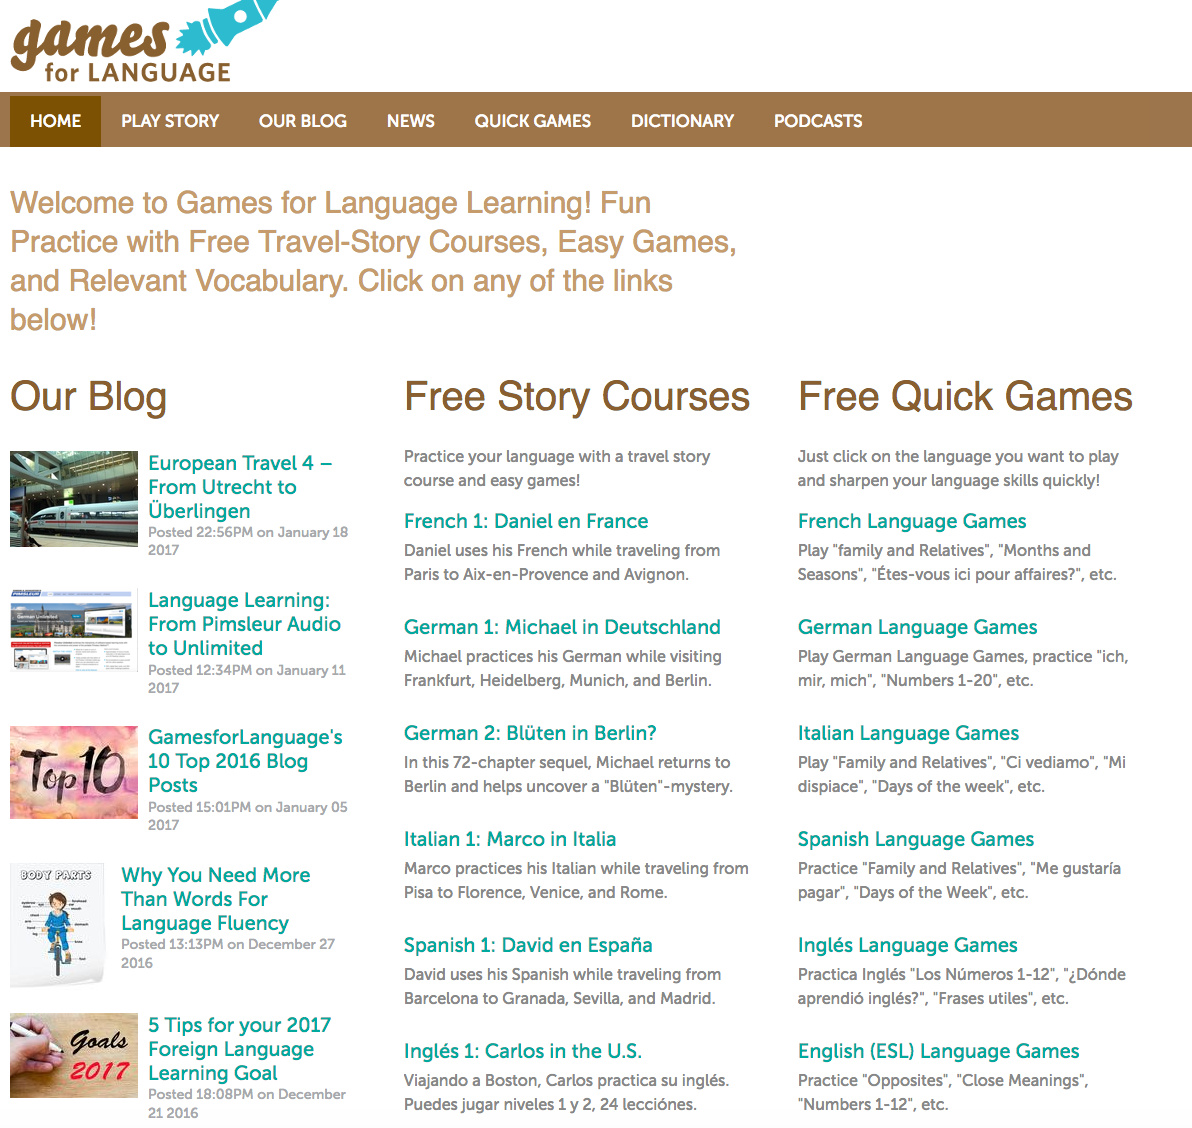 Gamesforlanguage. com Homepage